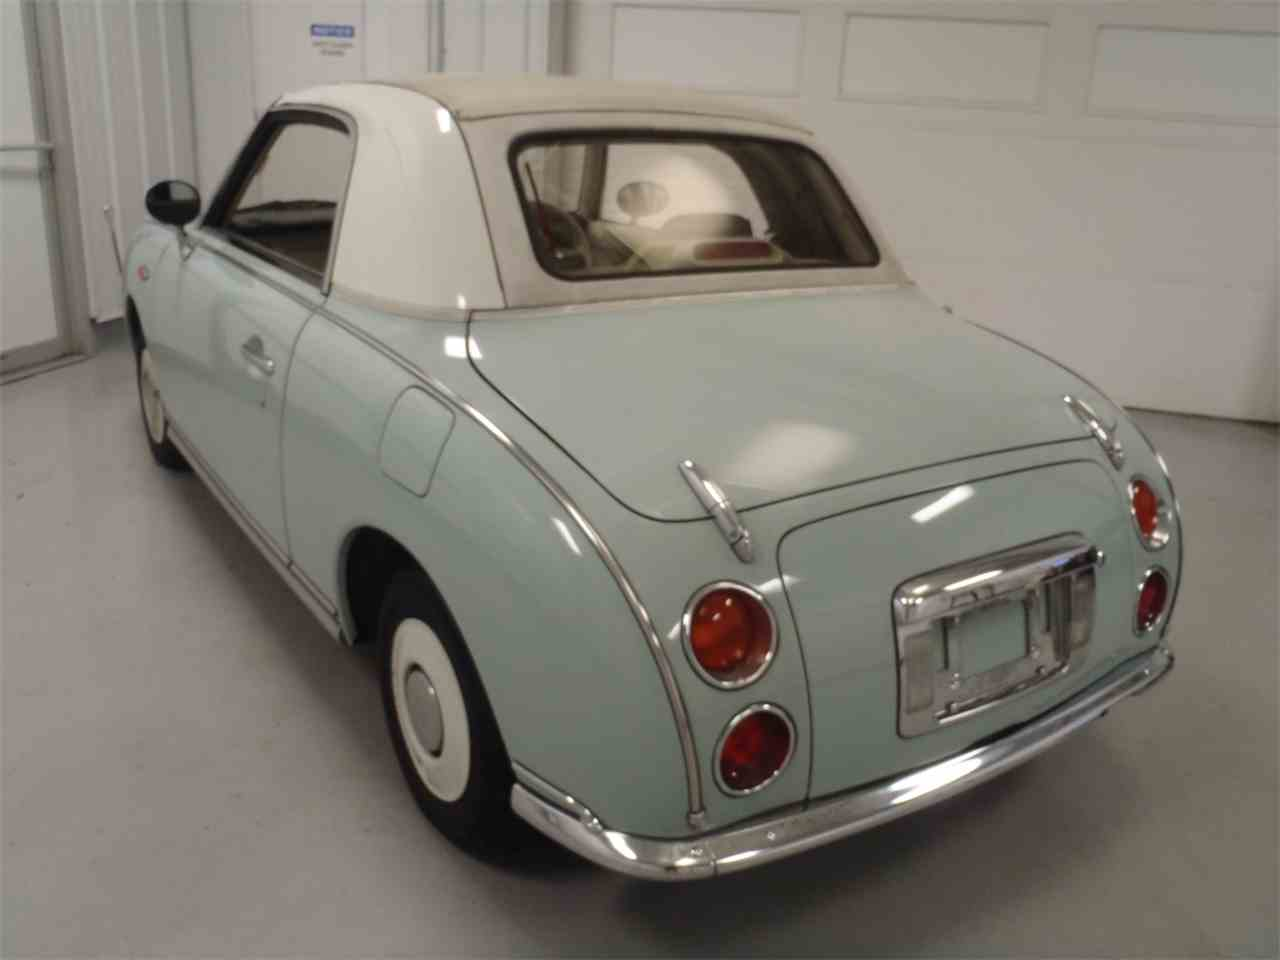 Large Picture of 1991 Nissan Figaro located in Christiansburg Virginia - $9,887.00 Offered by Duncan Imports & Classic Cars - JL5T